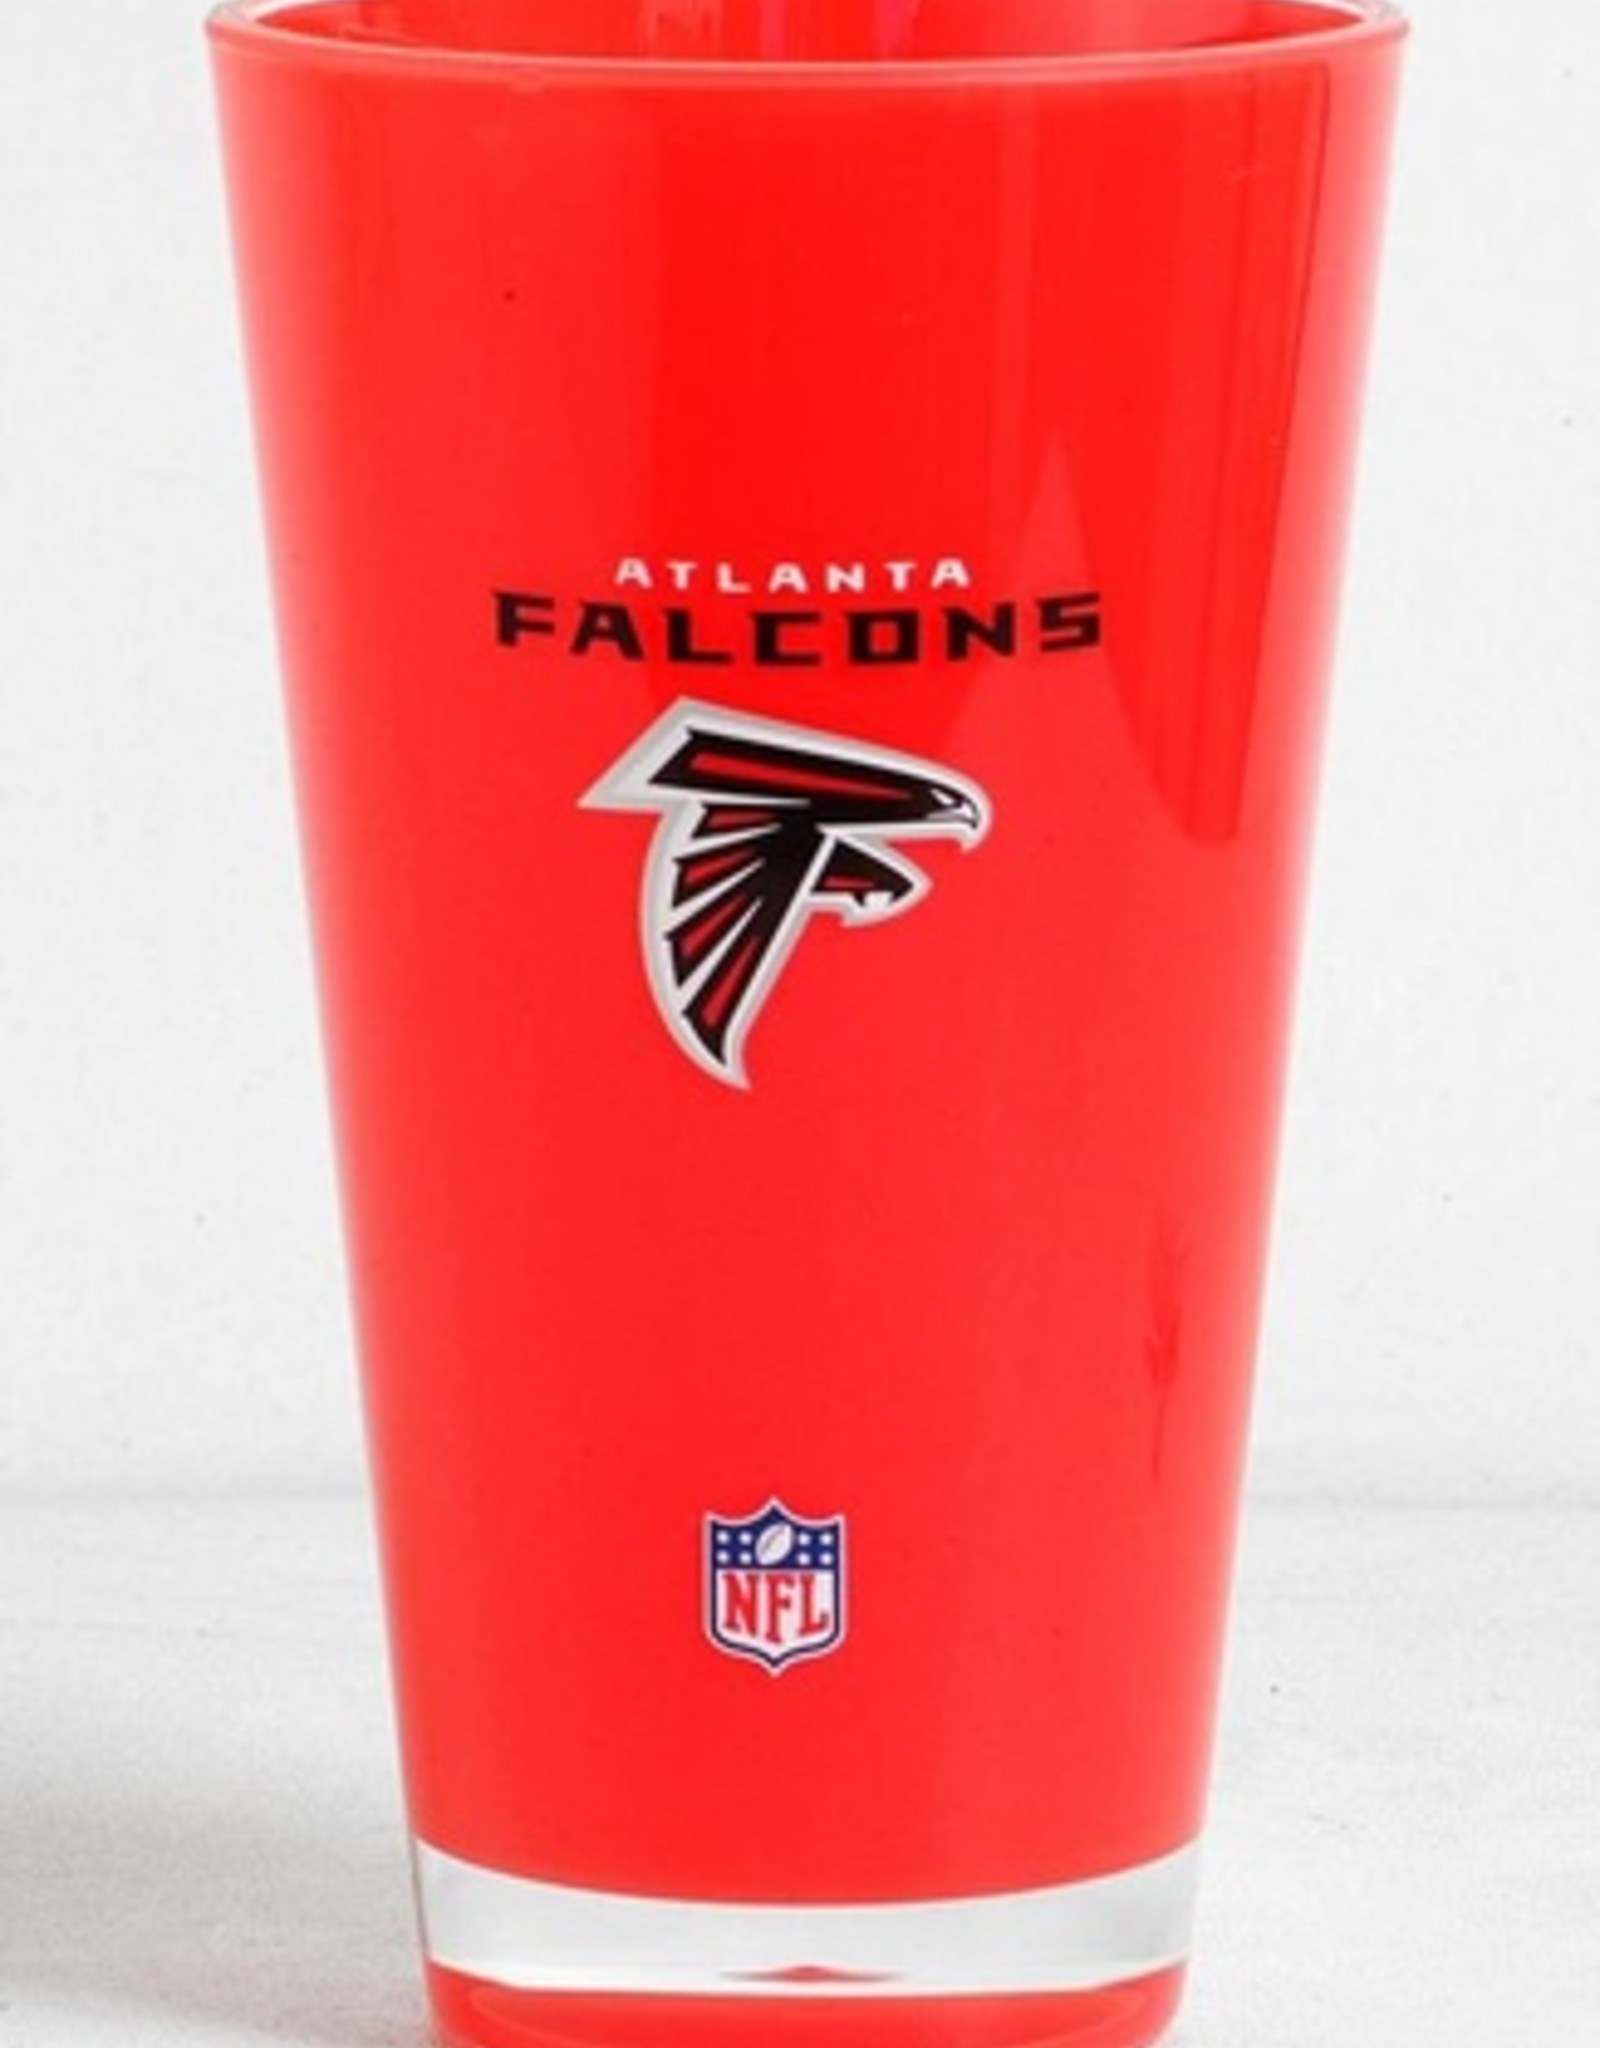 Atlanta Falcons Insulated 20oz Acrylic Tumbler